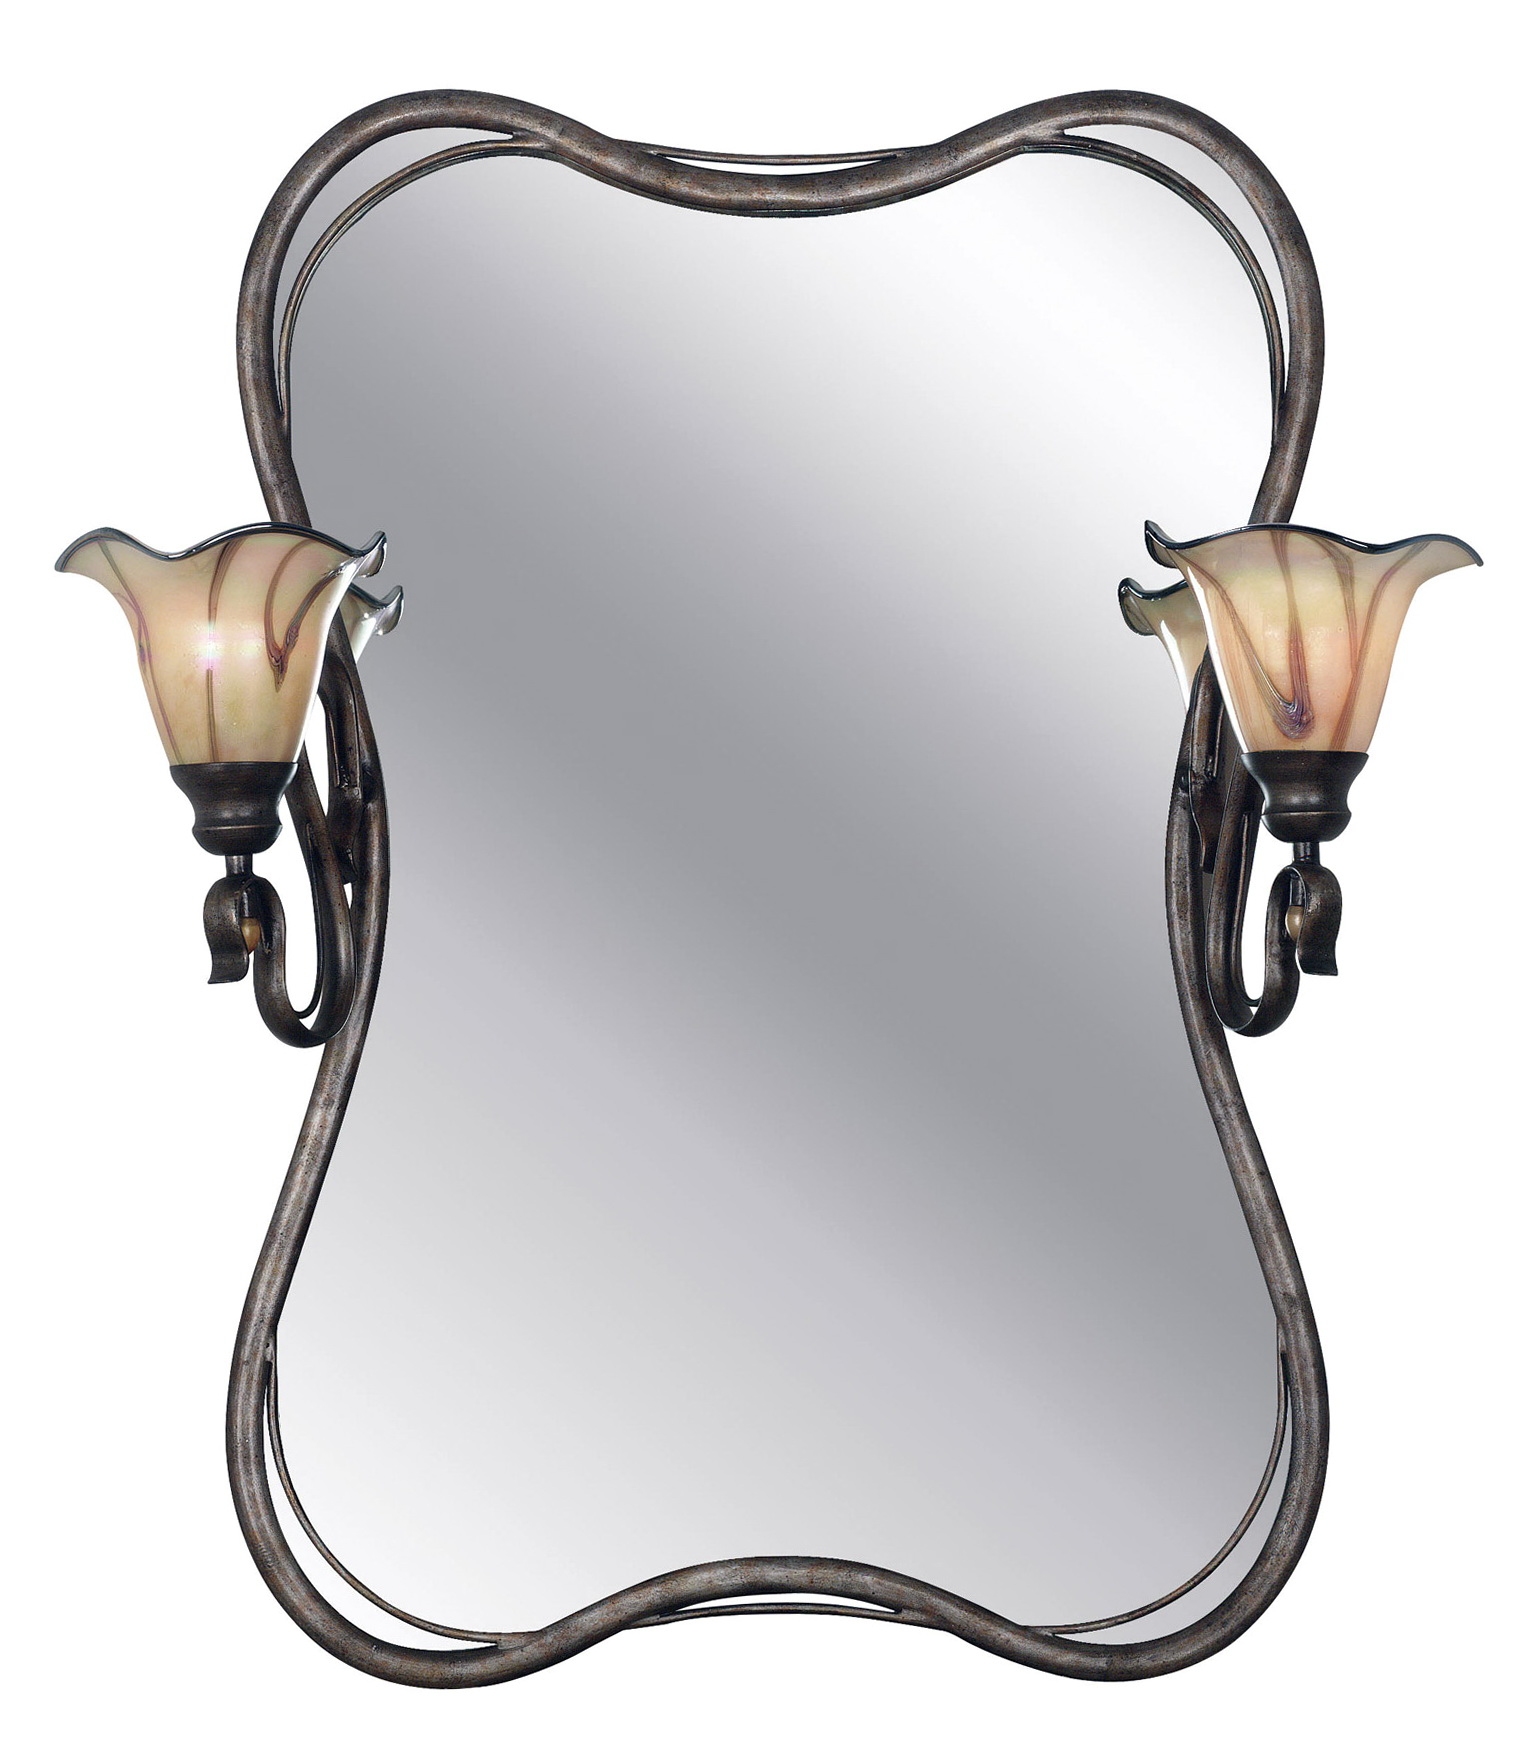 Tabletop Vanity Mirrors With Lights